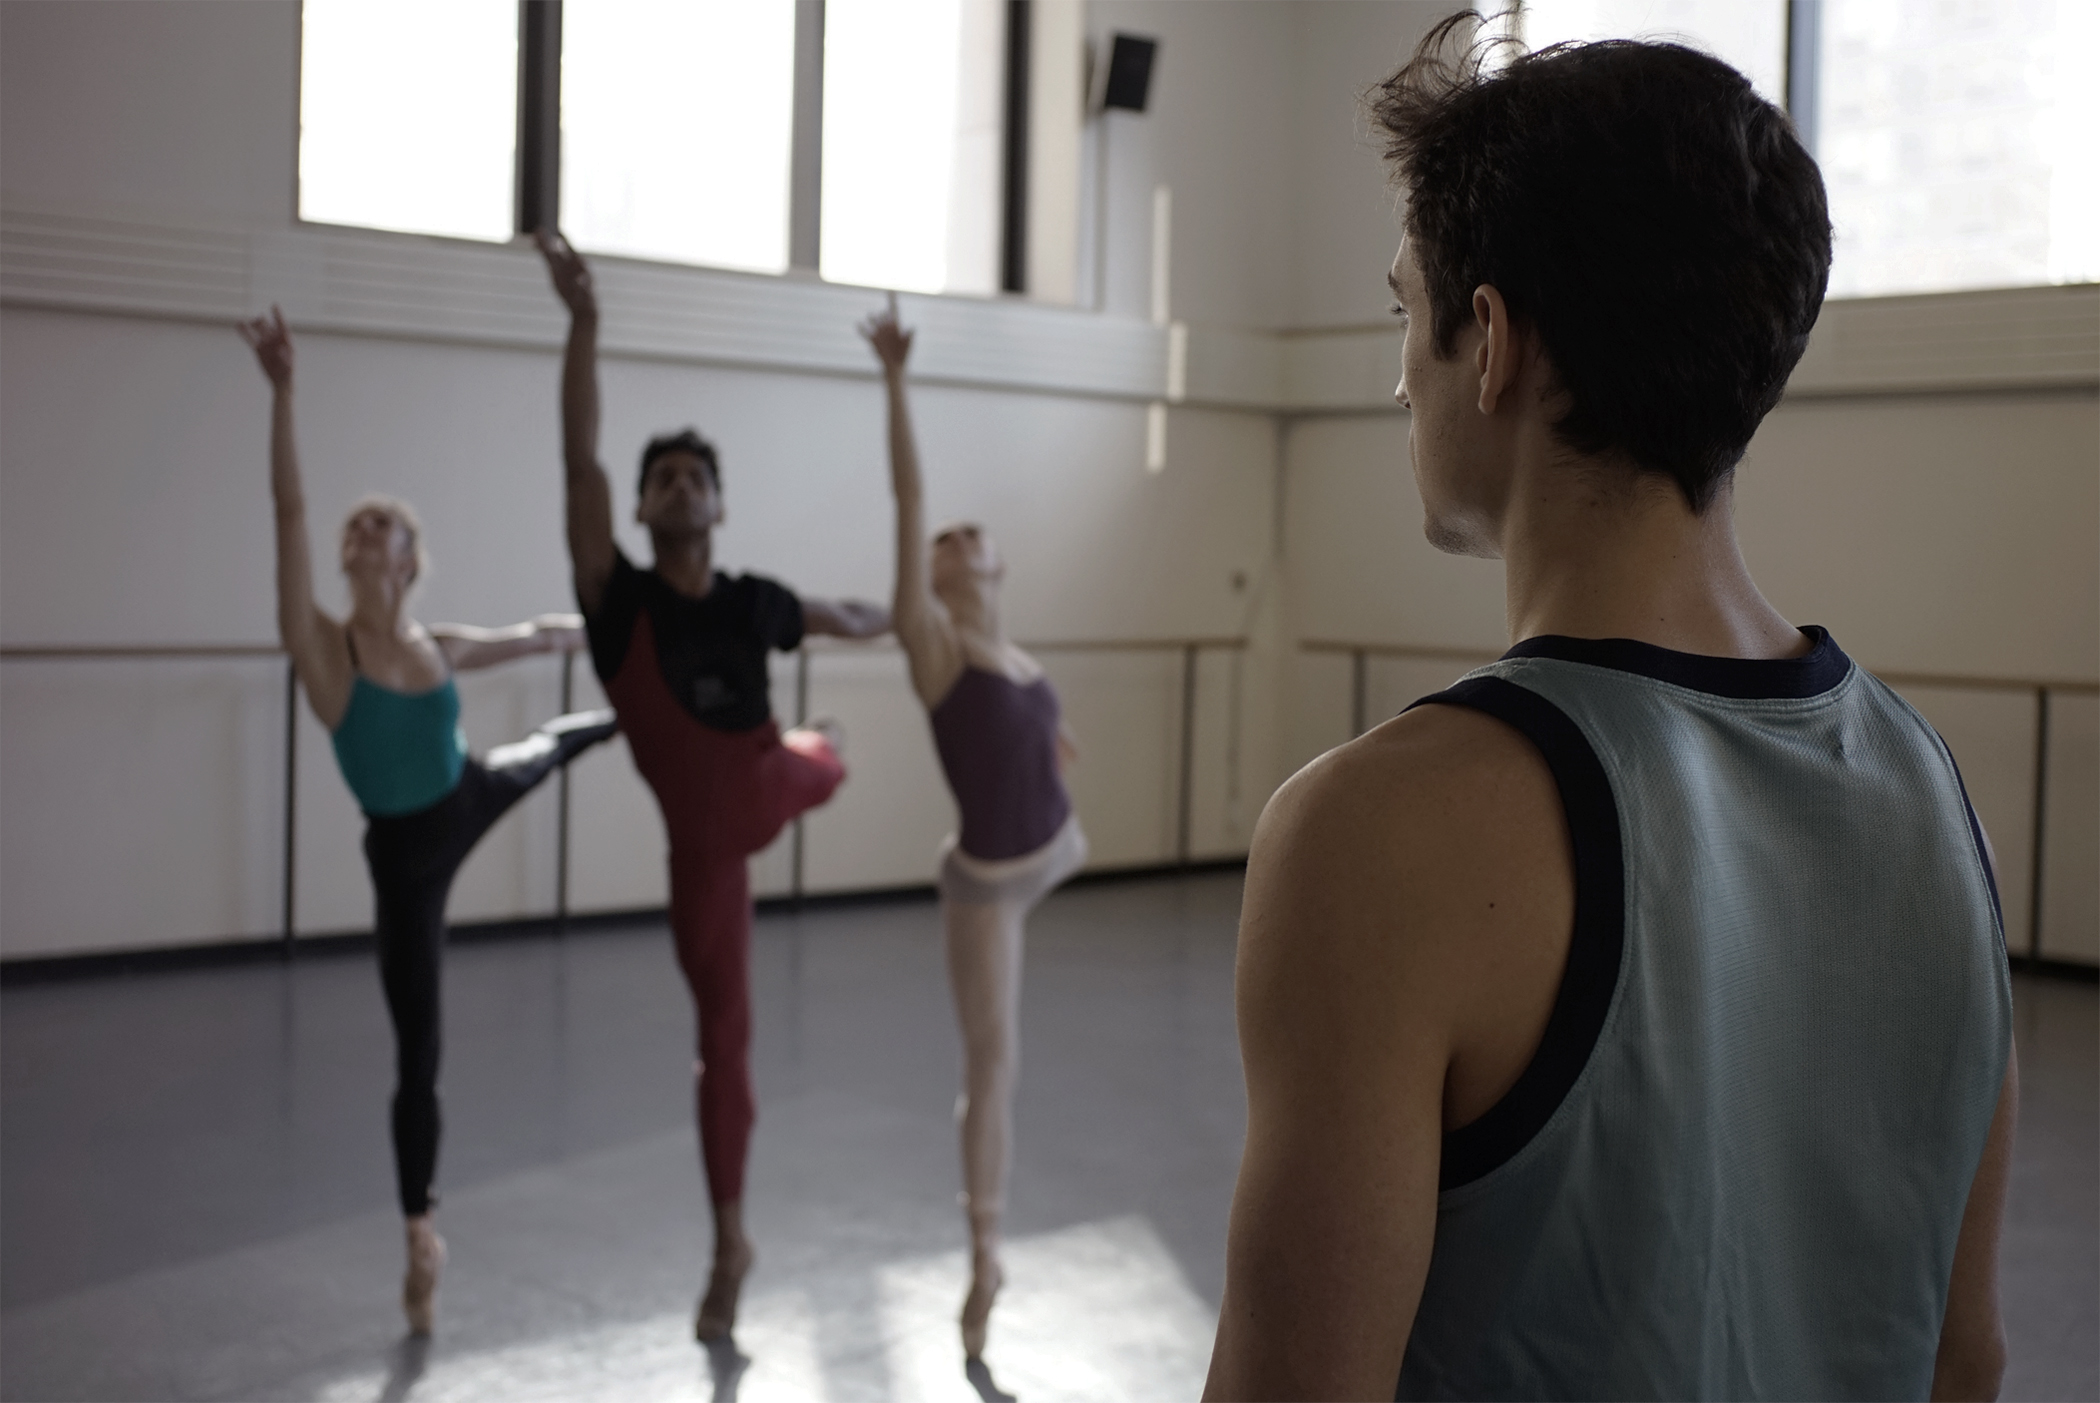 Justin Peck in BALLET 422, a Magnolia Pictures release. Photo courtesy of Magnolia Pictures.